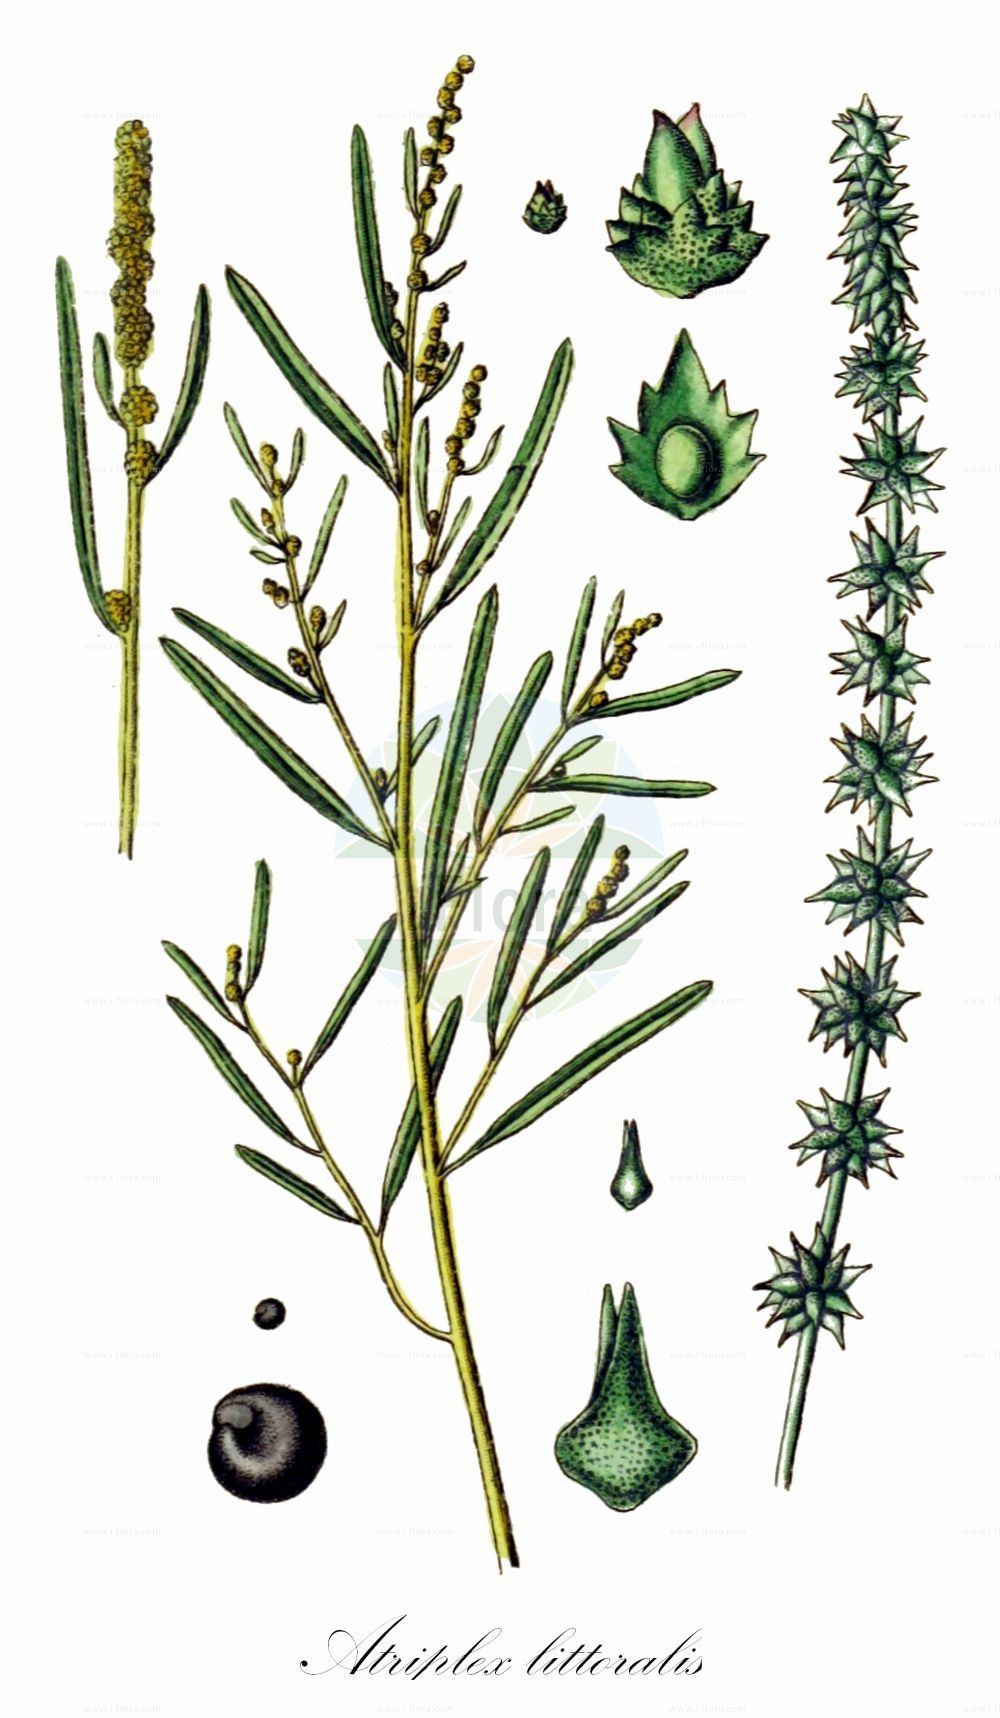 Historische Abbildung von Atriplex littoralis (Strand-Melde - Grass-leaved Orache). Das Bild zeigt Blatt, Bluete, Frucht und Same. ---- Historical Drawing of Atriplex littoralis (Strand-Melde - Grass-leaved Orache).The image is showing leaf, flower, fruit and seed.(Atriplex littoralis,Strand-Melde,Grass-leaved Orache,Atriplex serrata,Crested Saltbush,Grassleaf Orache,Shore Orache,Atriplex,Melde,Saltbush,Amaranthaceae,Fuchsschwanzgewaechse,Pigweed family,Blatt,Bluete,Frucht,Same,leaf,flower,fruit,seed,Sturm (1796f))